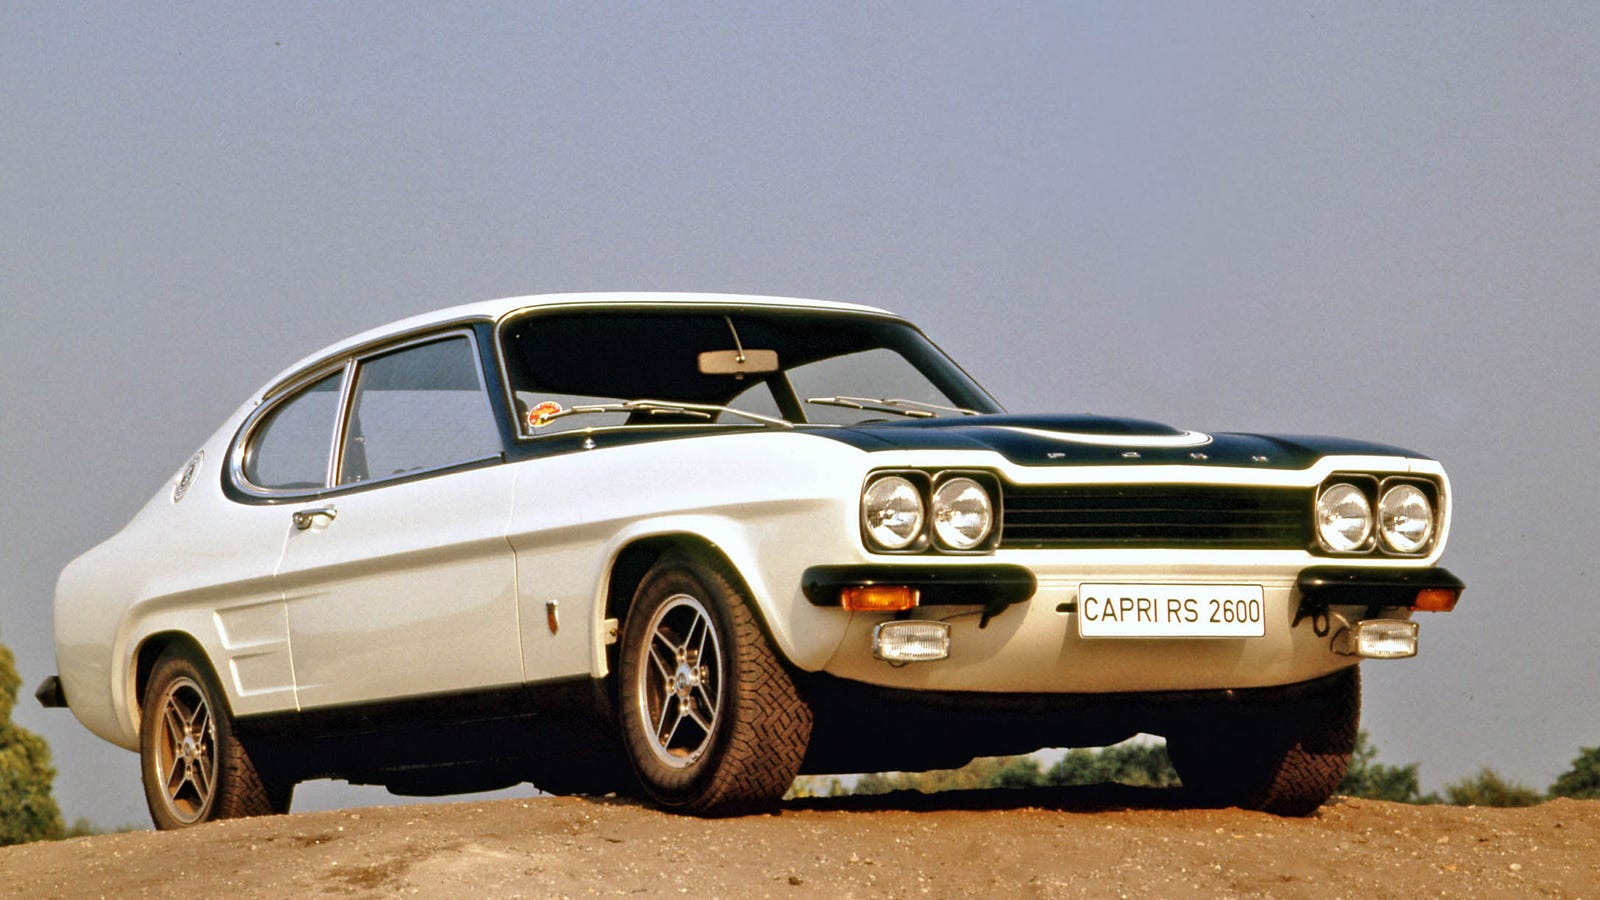 The Unlikely Story Of How This Ford Gave Birth To Bmw M 1980 Capri Interior